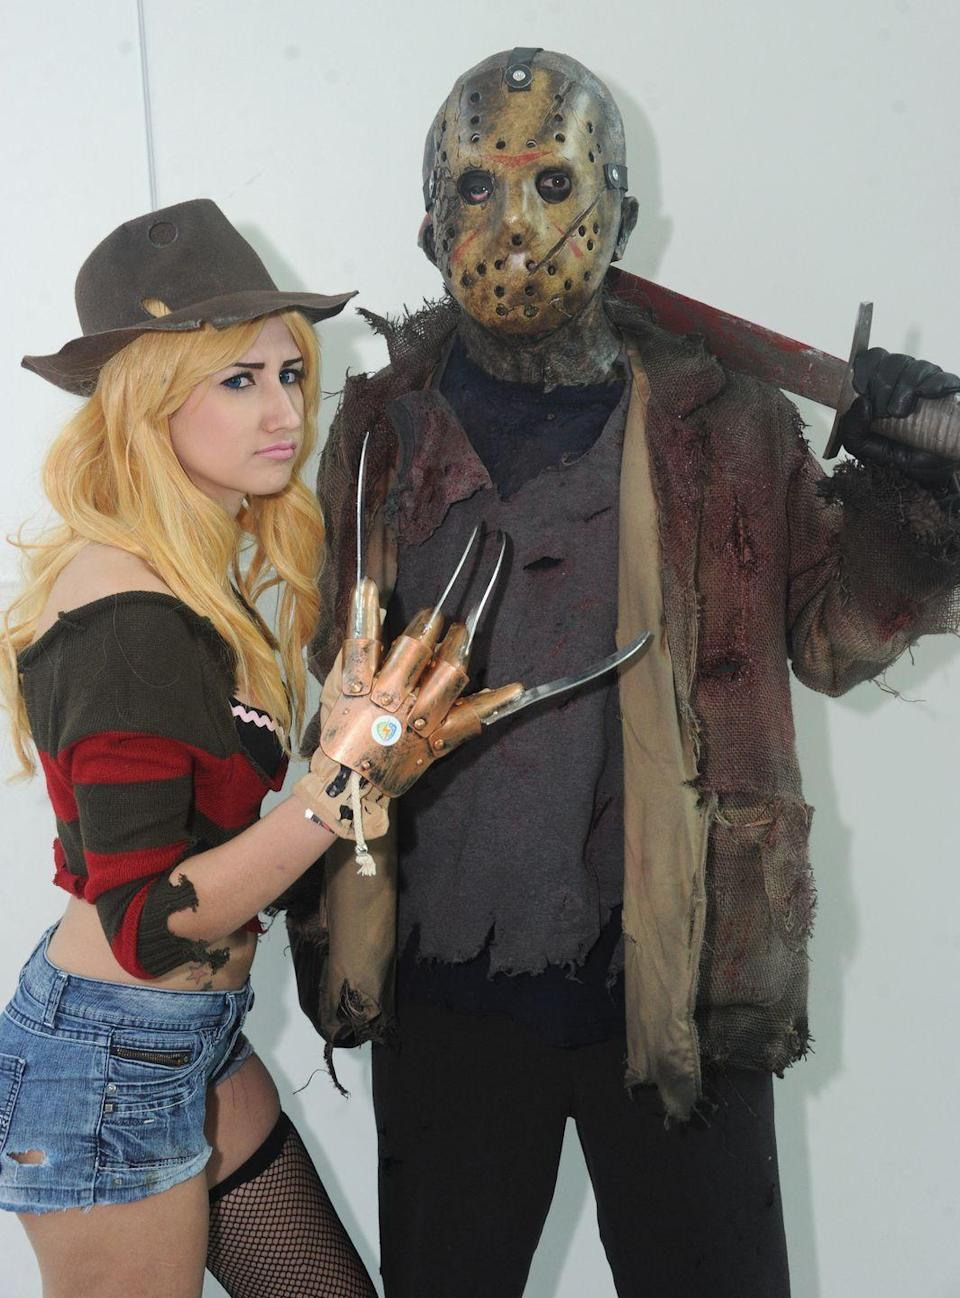 """<p>Classic scary movies equal classic scary couples costumes, like Jason Voorhees and Freddy Krueger here.</p><p><a class=""""link rapid-noclick-resp"""" href=""""https://www.amazon.com/SUIT-YOURSELF-Voorhees-Costume-Standard/dp/B07QX1LM8C?tag=syn-yahoo-20&ascsubtag=%5Bartid%7C10070.g.28669645%5Bsrc%7Cyahoo-us"""" rel=""""nofollow noopener"""" target=""""_blank"""" data-ylk=""""slk:SHOP MEN'S COSTUME"""">SHOP MEN'S COSTUME</a></p><p><a class=""""link rapid-noclick-resp"""" href=""""https://www.amazon.com/Secret-Wishes-Miss-Krueger-Costume/dp/B001AX0QCI?tag=syn-yahoo-20&ascsubtag=%5Bartid%7C10070.g.28669645%5Bsrc%7Cyahoo-us"""" rel=""""nofollow noopener"""" target=""""_blank"""" data-ylk=""""slk:SHOP WOMEN'S COSTUME"""">SHOP WOMEN'S COSTUME</a></p>"""